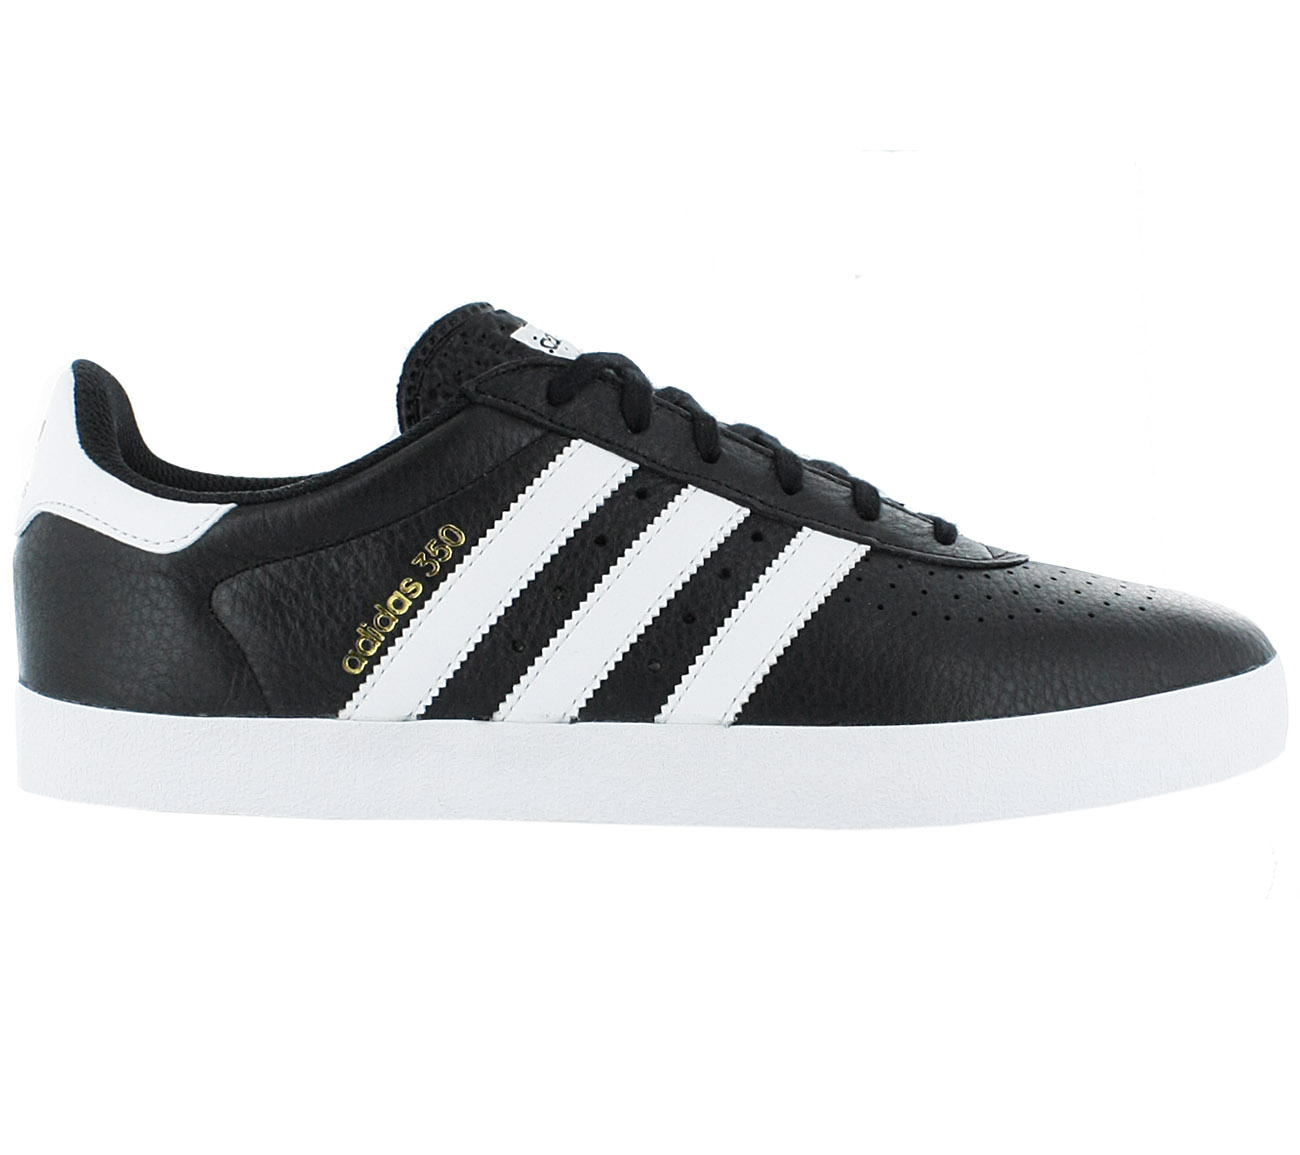 wholesale dealer 5c36b 7d5f1 NUOVO-adidas-350-BY9761-Uomo-Scarpe-Sneaker-SALE